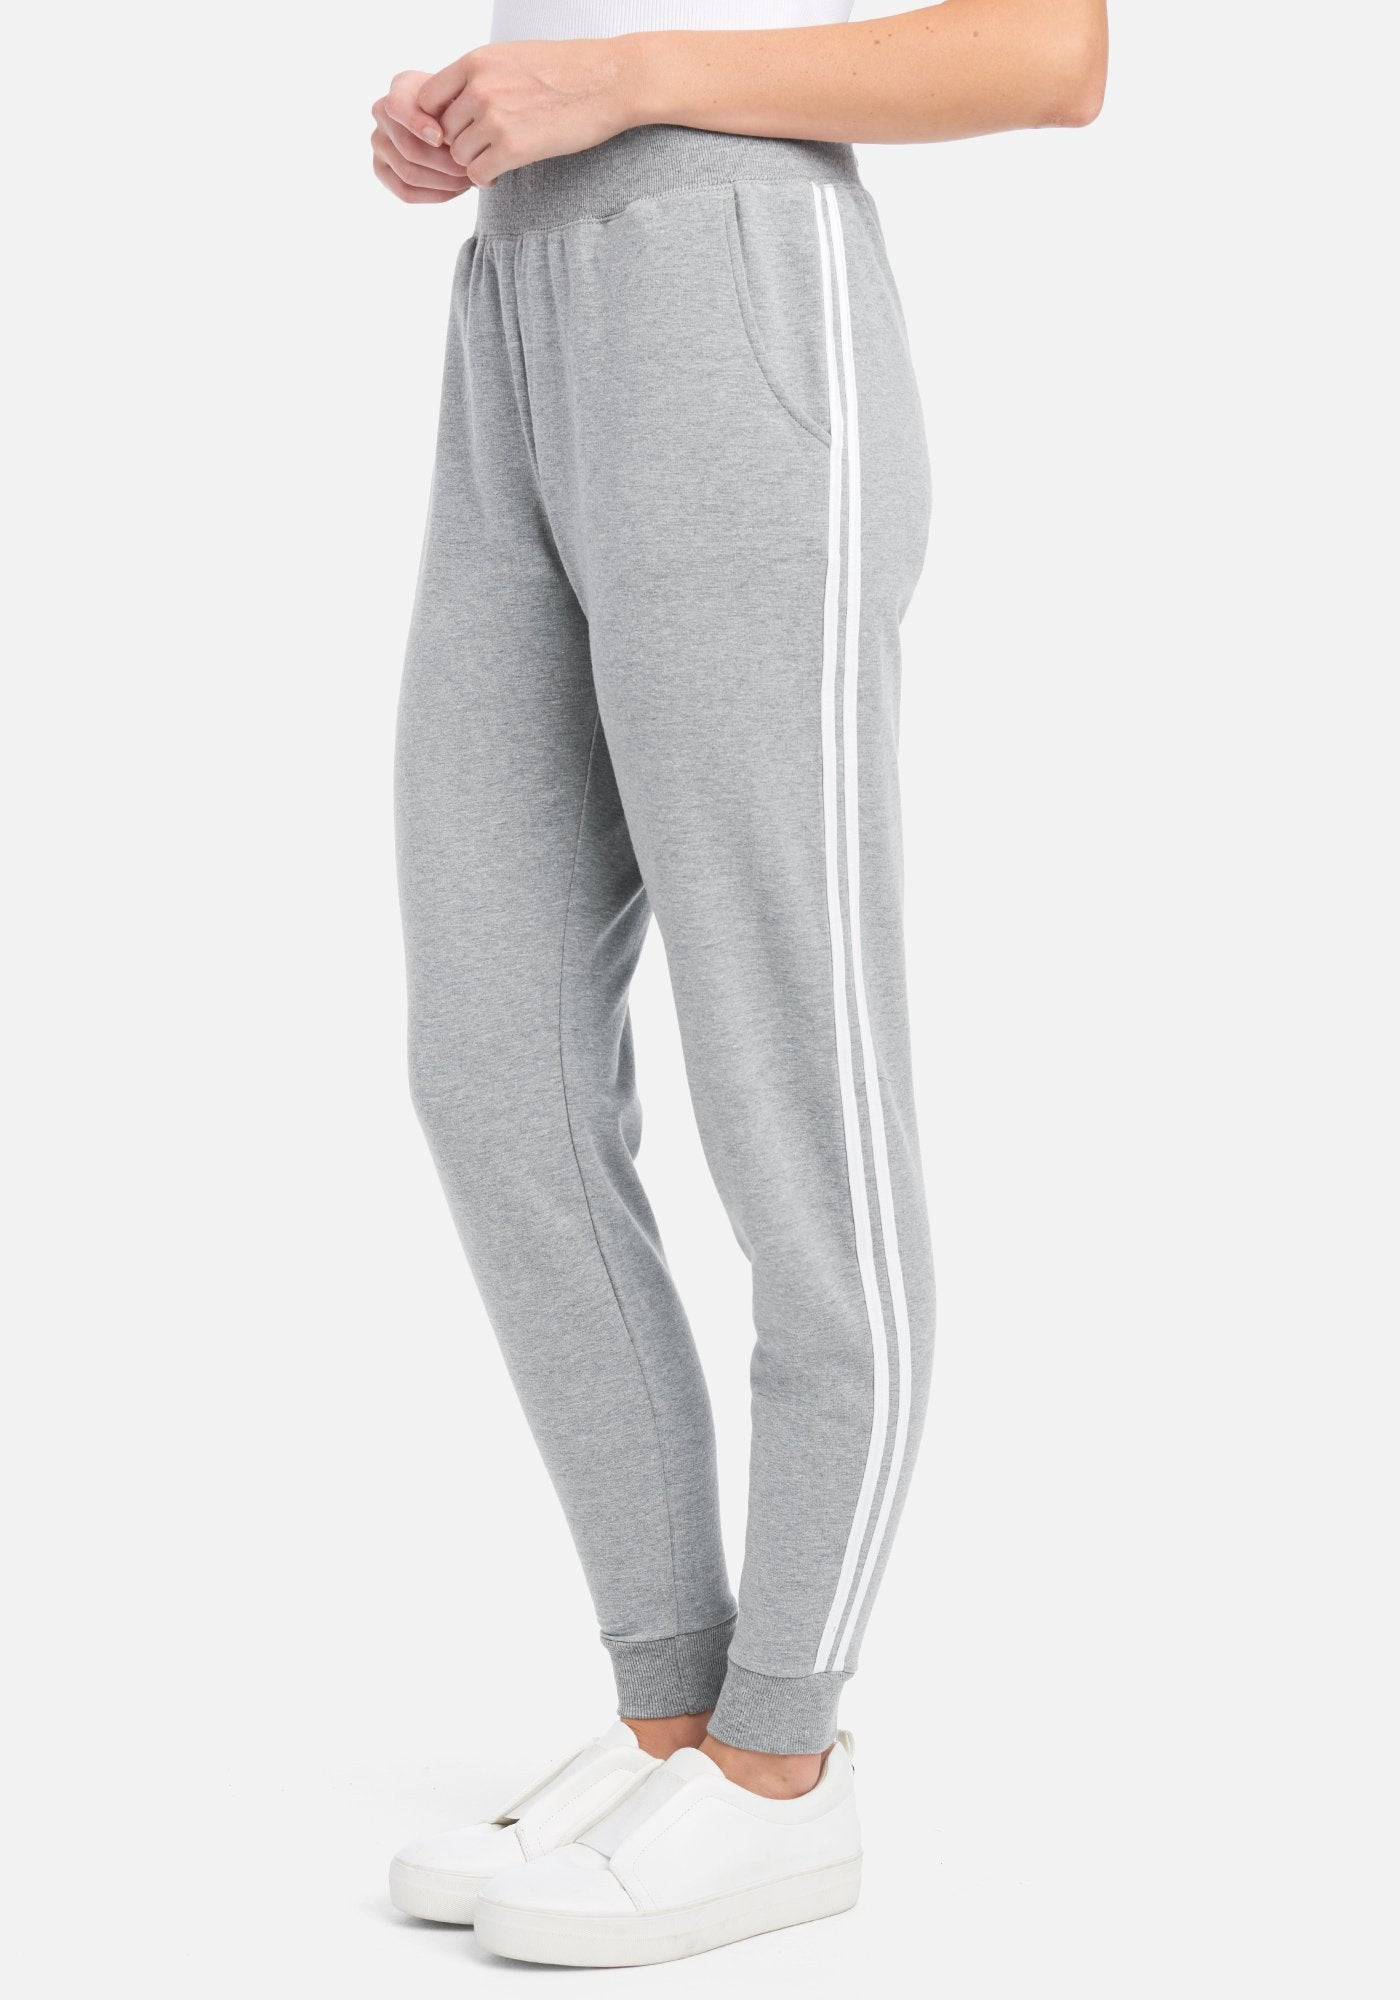 Women's Bebe Logo Contrast Jogger Pant, Size Small in Grey Heather Cotton/Spandex